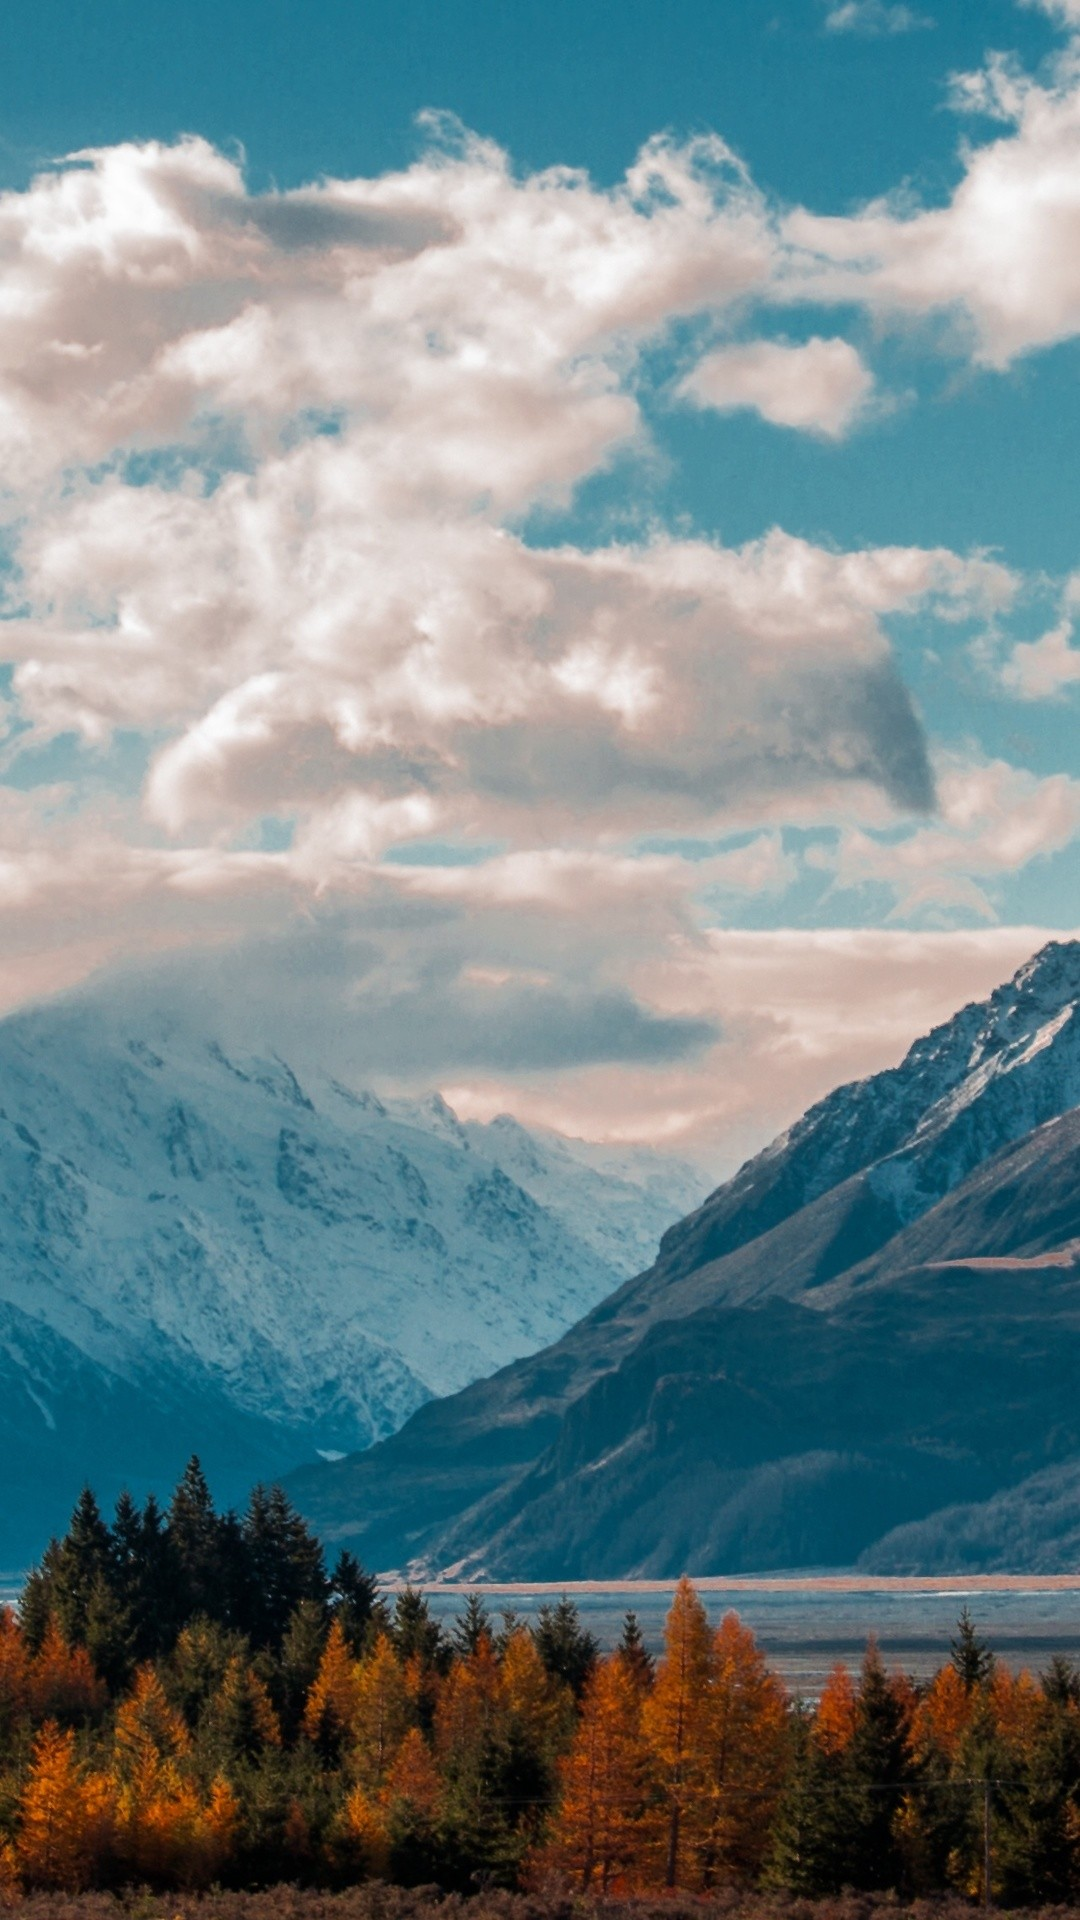 Xiaomi mi 4 wallpapers hd mountains landscape nw wallpaper 1080x1920 380x676 voltagebd Image collections